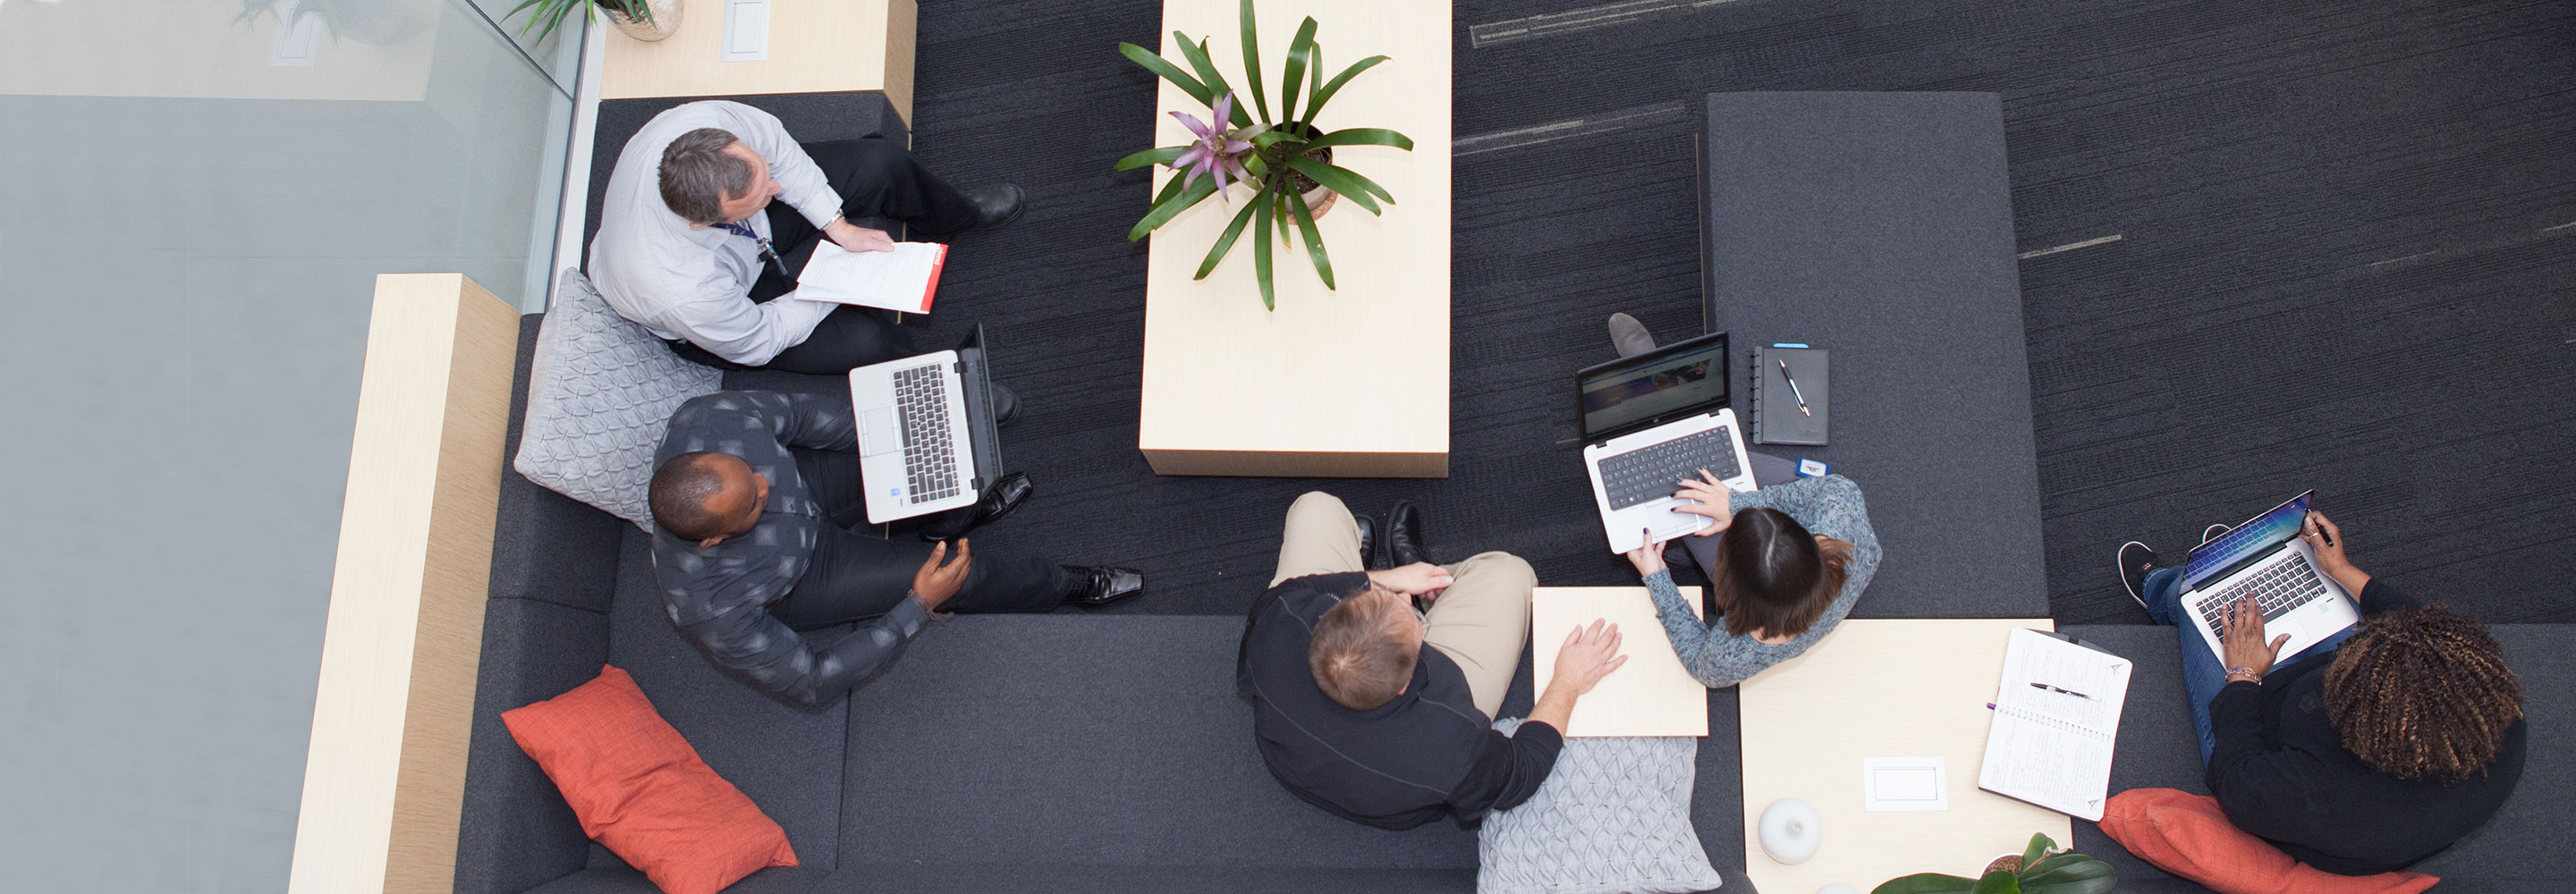 Team meeting in a modern workplace open office